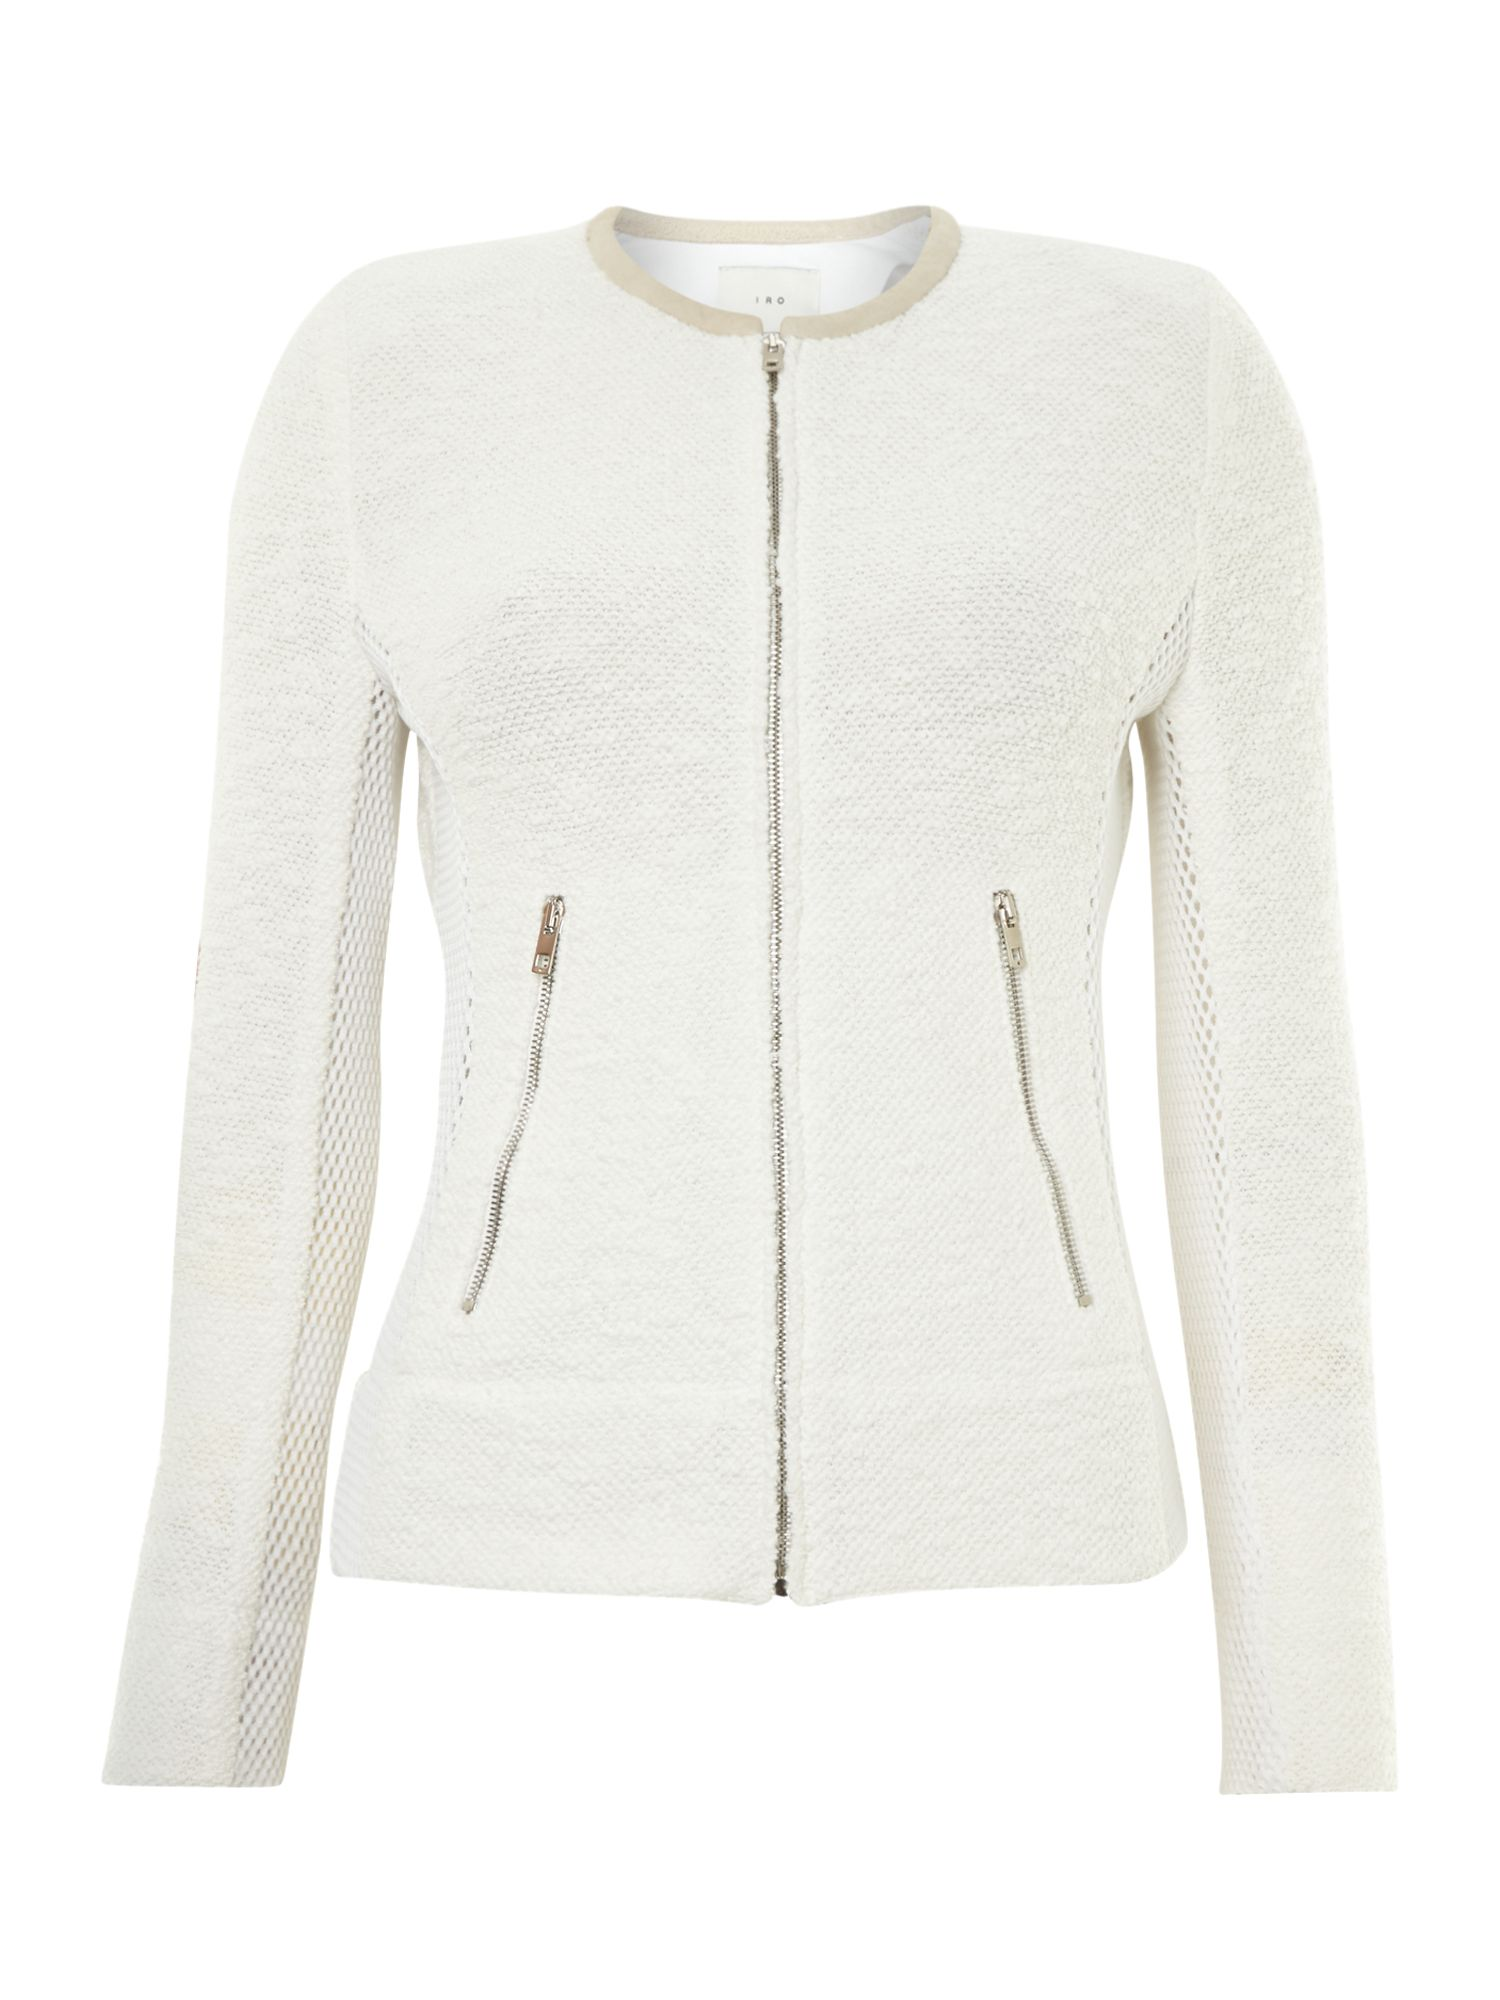 Round neck boucleside detail jacket